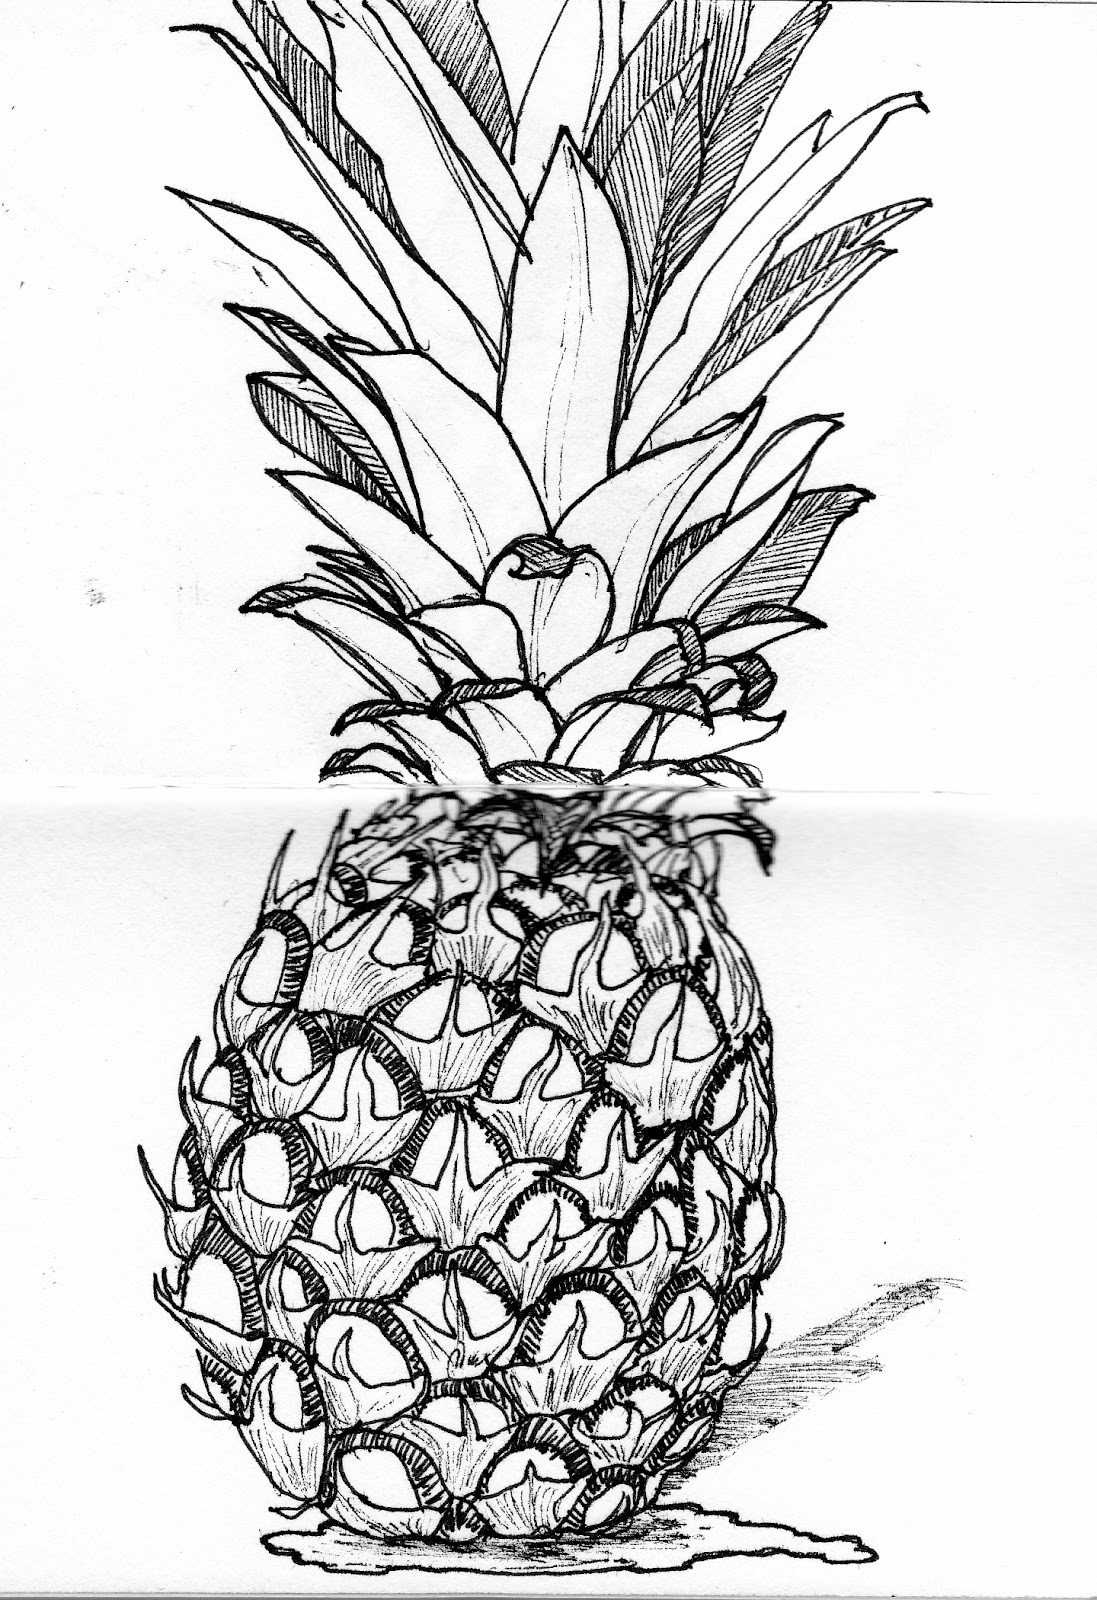 pineapple line drawing how to draw a pineapple step by step easylinedrawing pineapple drawing line